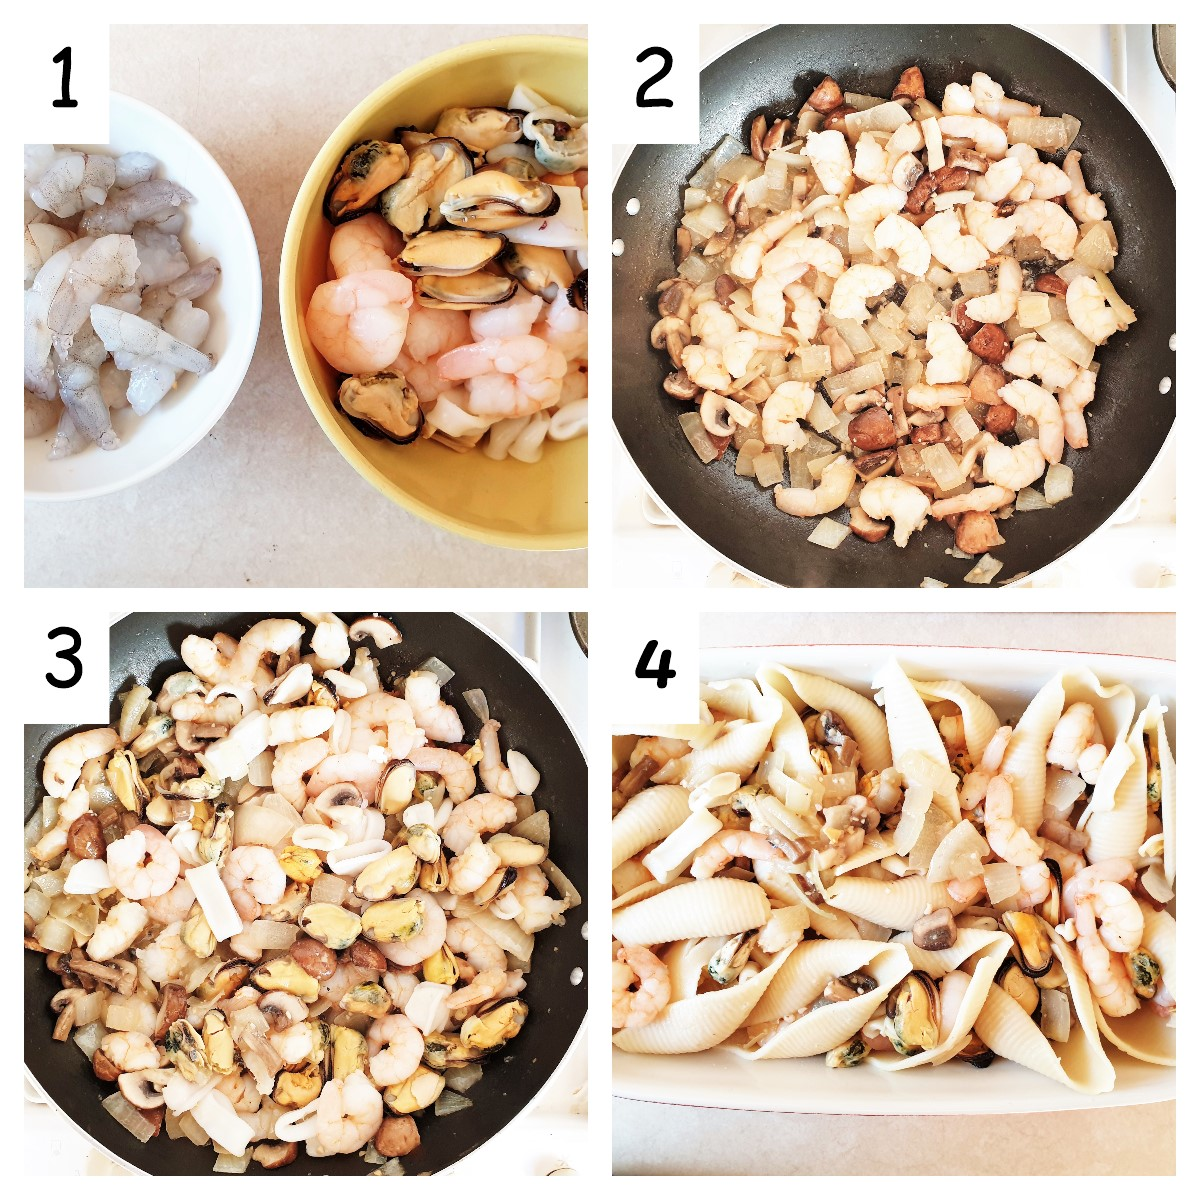 Collage showing steps for filling seafood pasta.